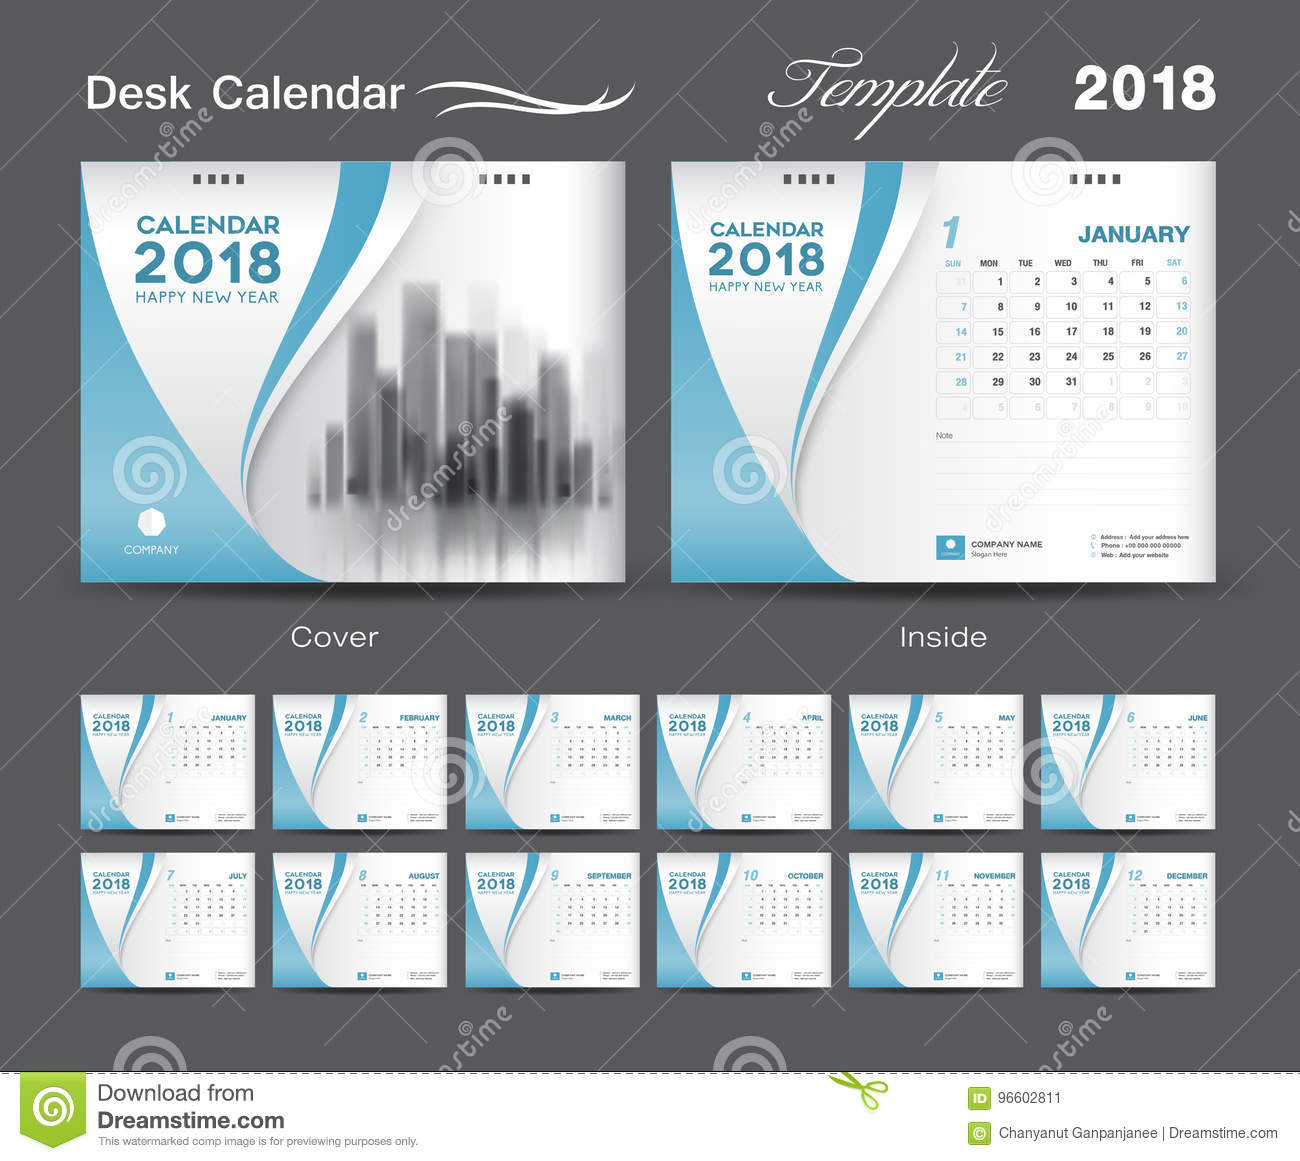 Calendar Cover Page Design : Desk calendar template layout design blue cover